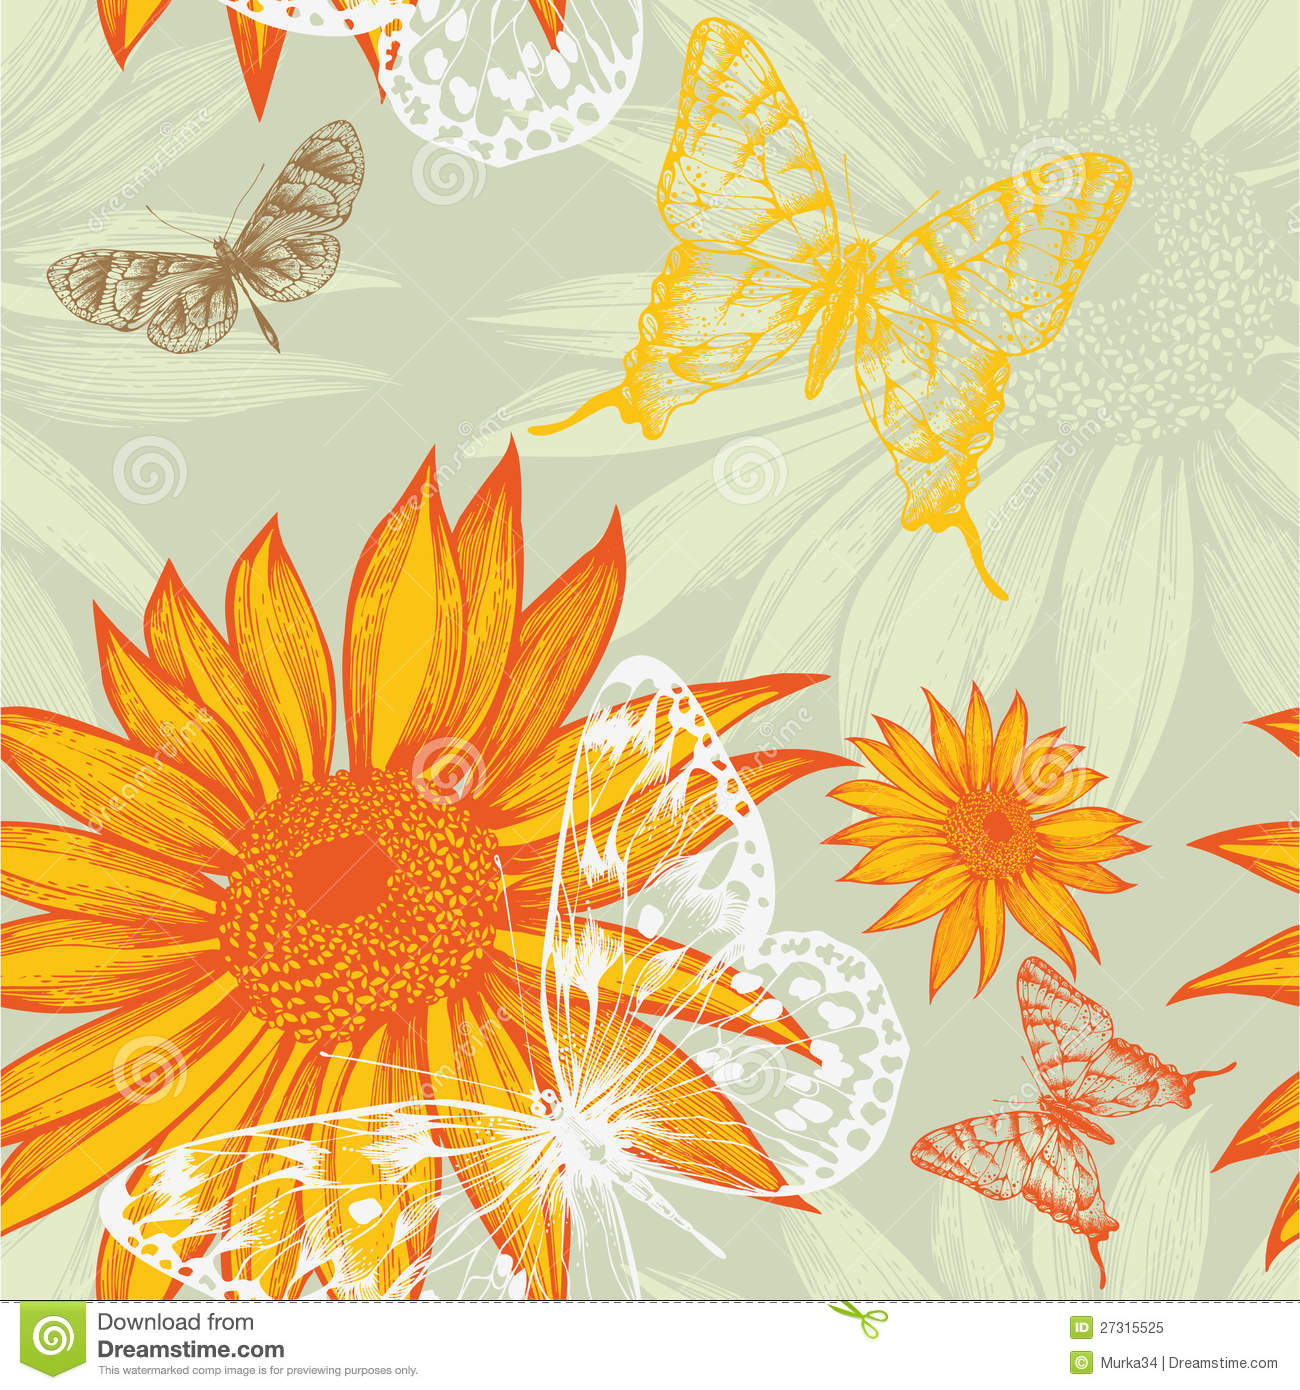 Seamless pattern with sunflowers and butterflies,